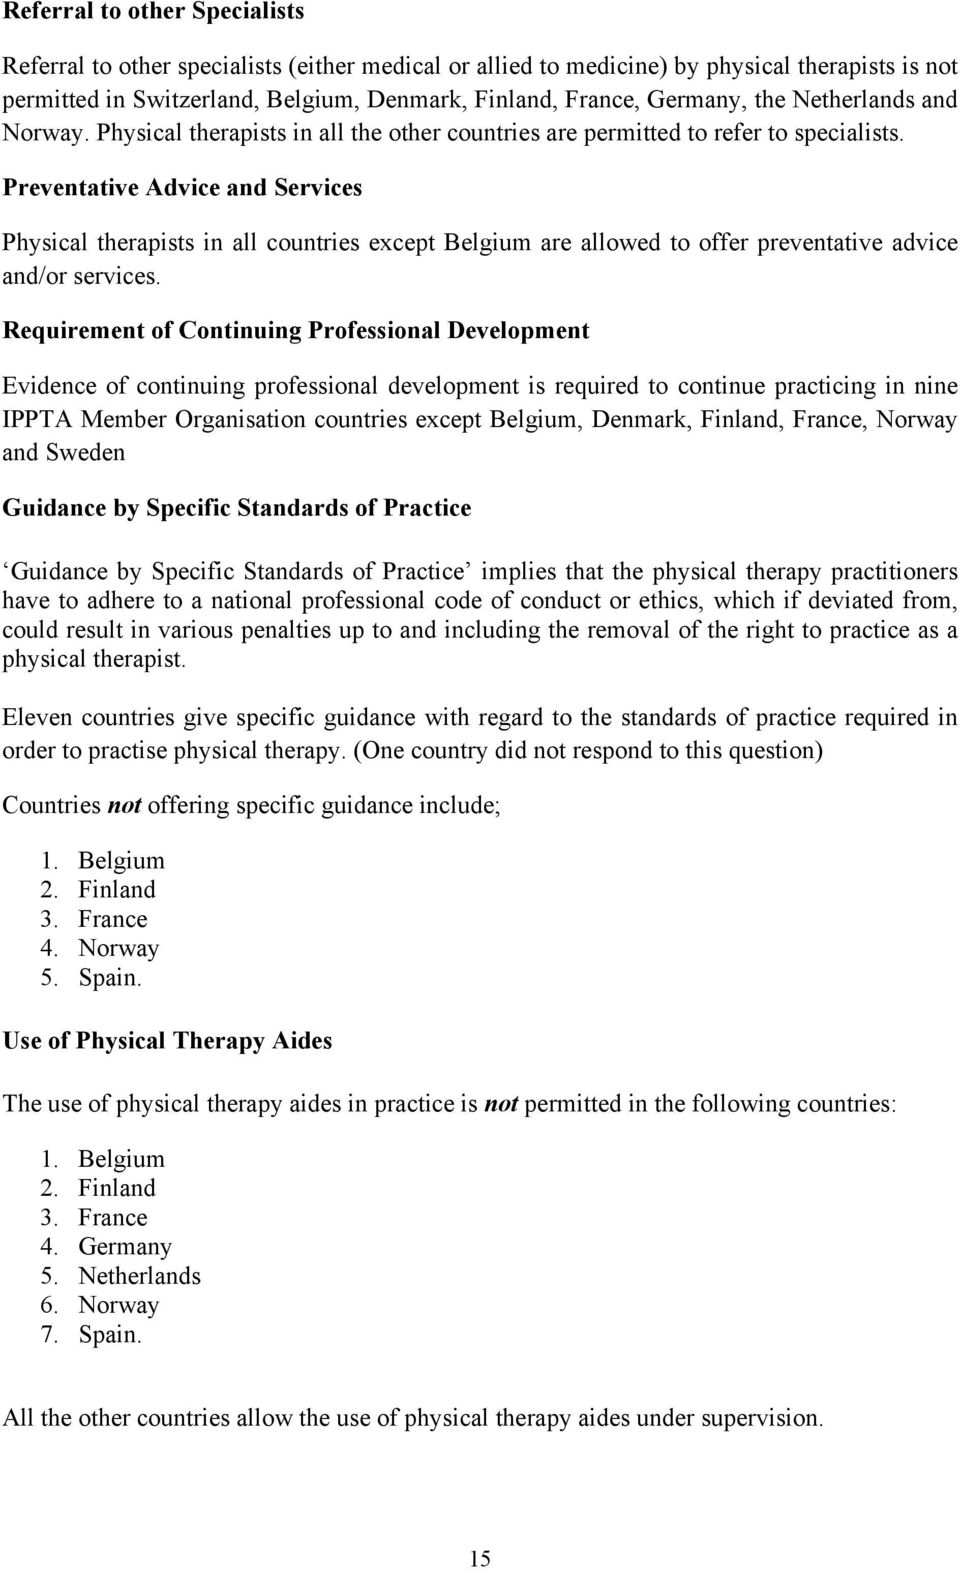 Preventative Advice and Services Physical therapists in all countries except Belgium are allowed to offer preventative advice and/or services.